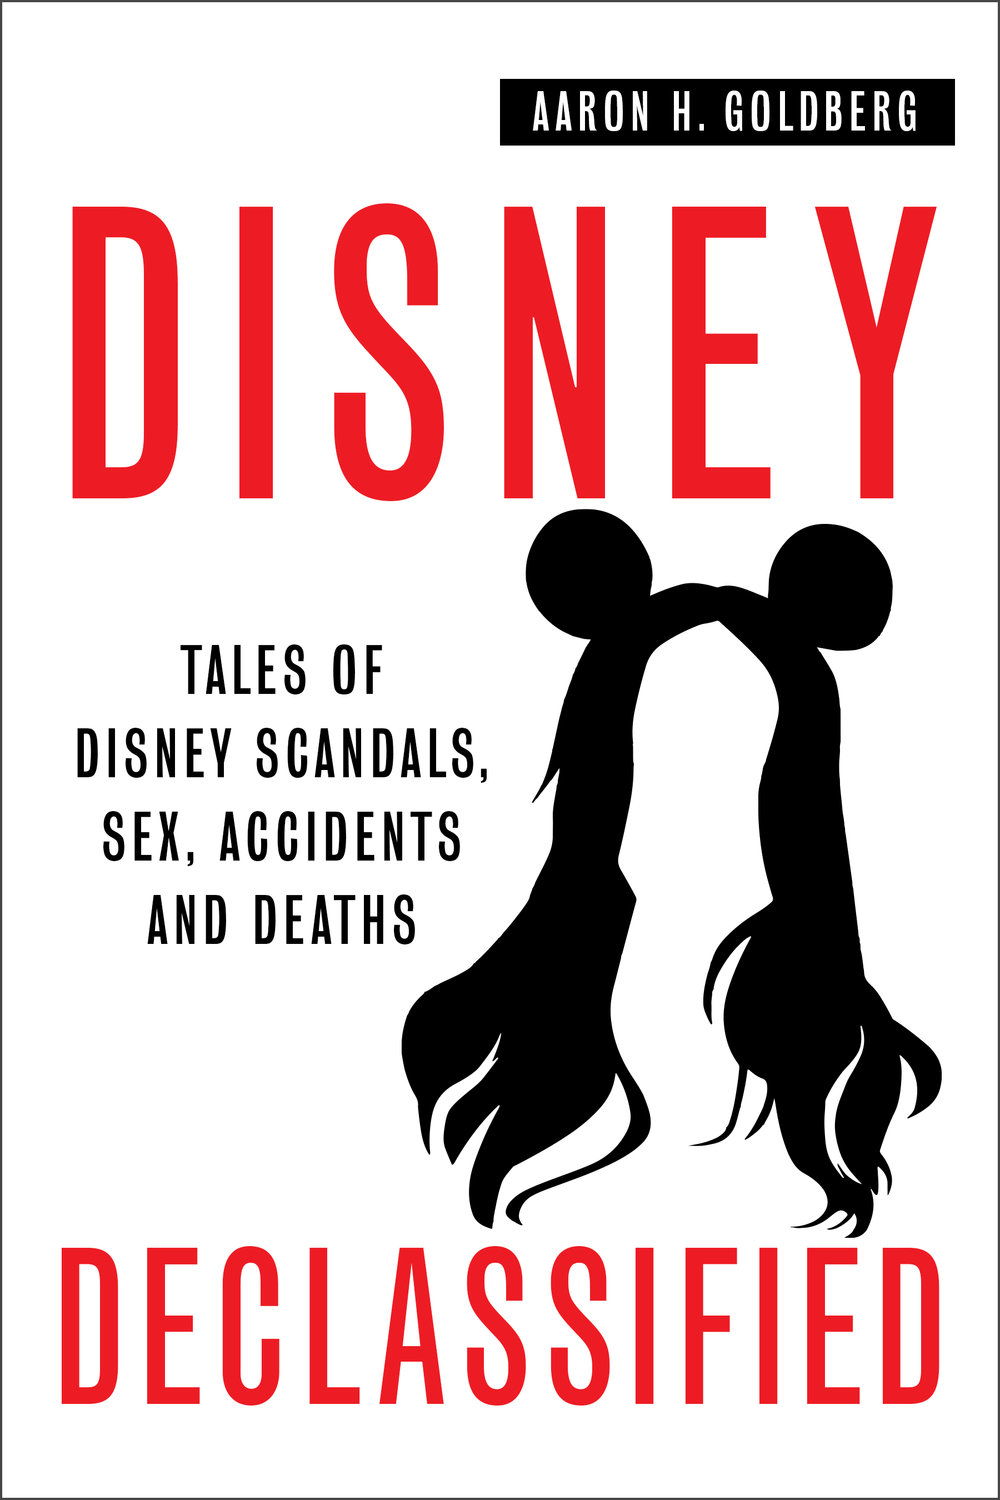 Disney_Declassified_2016_ebook_cover.jpg